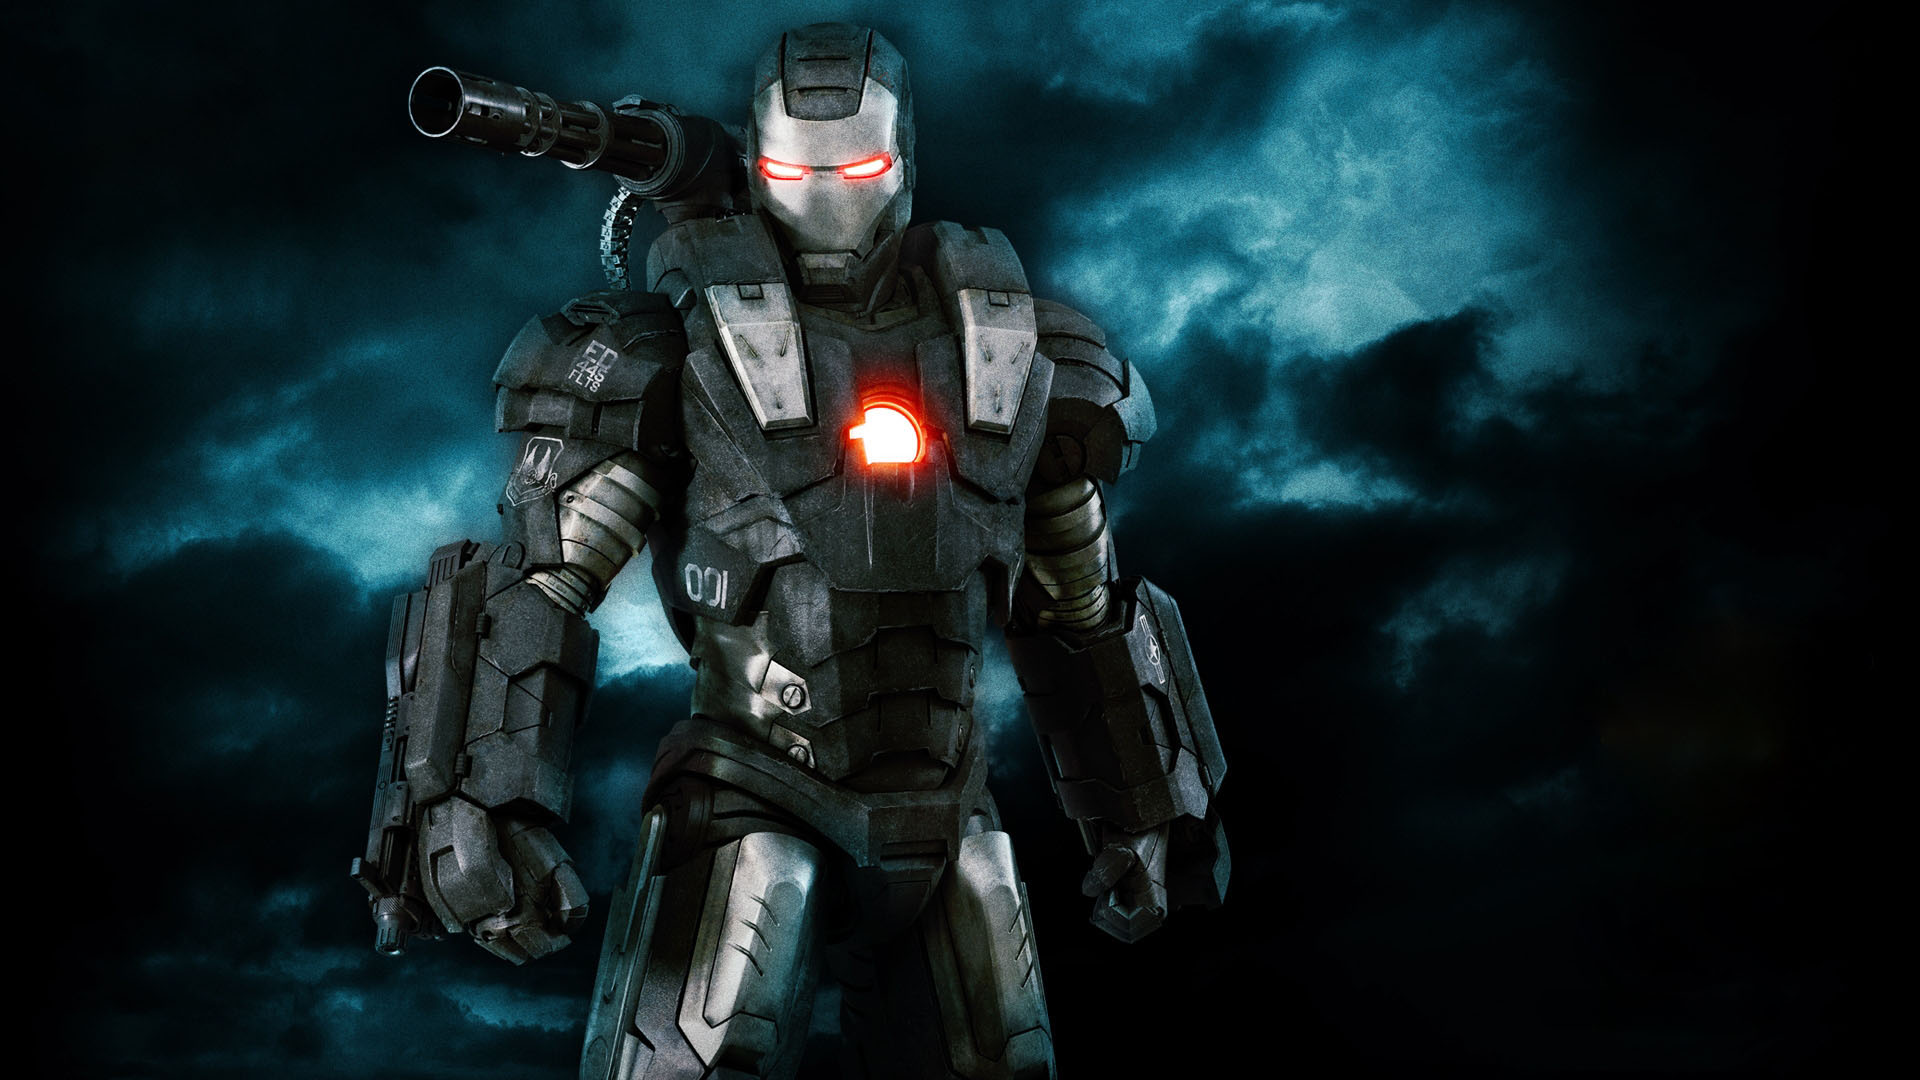 Cool Pictures Iron Man 3 HD Wallpaper Cool Pictures Iron Man 3 1920x1080